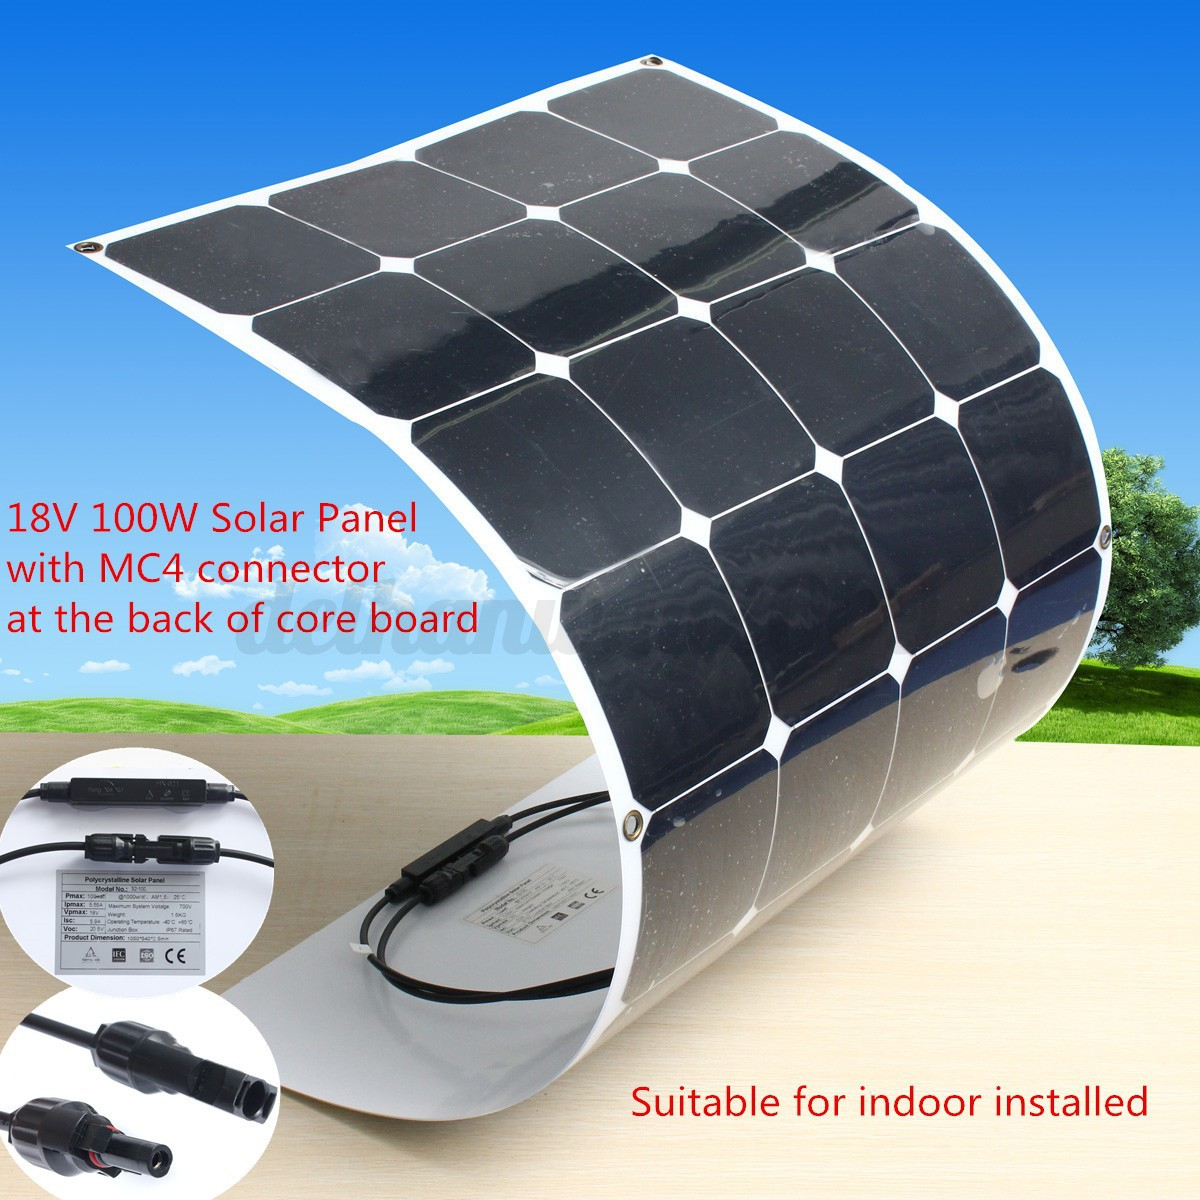 Lensun Etfe Coating Folding Solar Charge 100w 18v Portable Flexible Solar Panel For Charging 12v Battery Ideal For Outdoor C ing Rvs Caravansmotorhomes Boats And Yachts besides Free Electrical Projects Circuits For Students in addition 60 Watt Switching Power Supply also How To Wire Solar Panel To 12v Battery besides 100watt Inverter 12vdc To 220vac Mosfet. on 100w 12v solar battery charger circuit